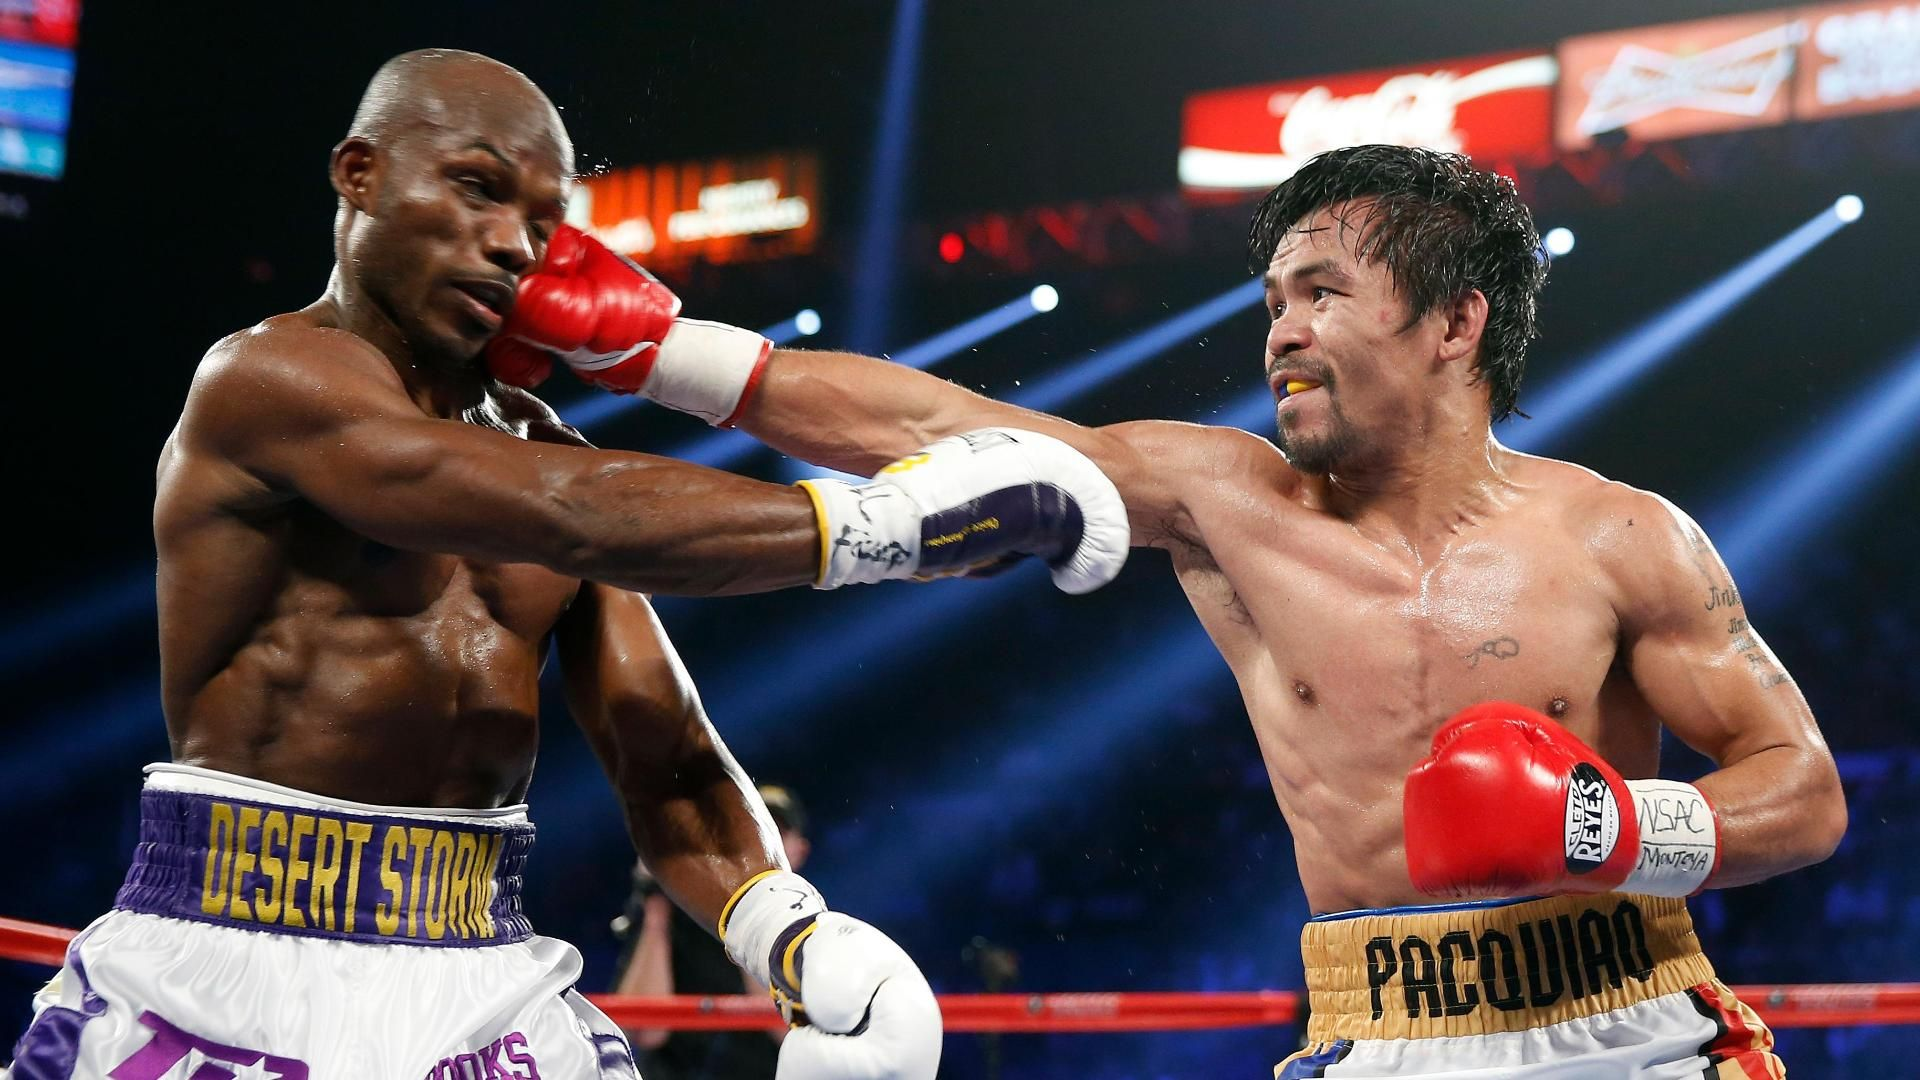 Pacquiao defeats Bradley by unanimous decision